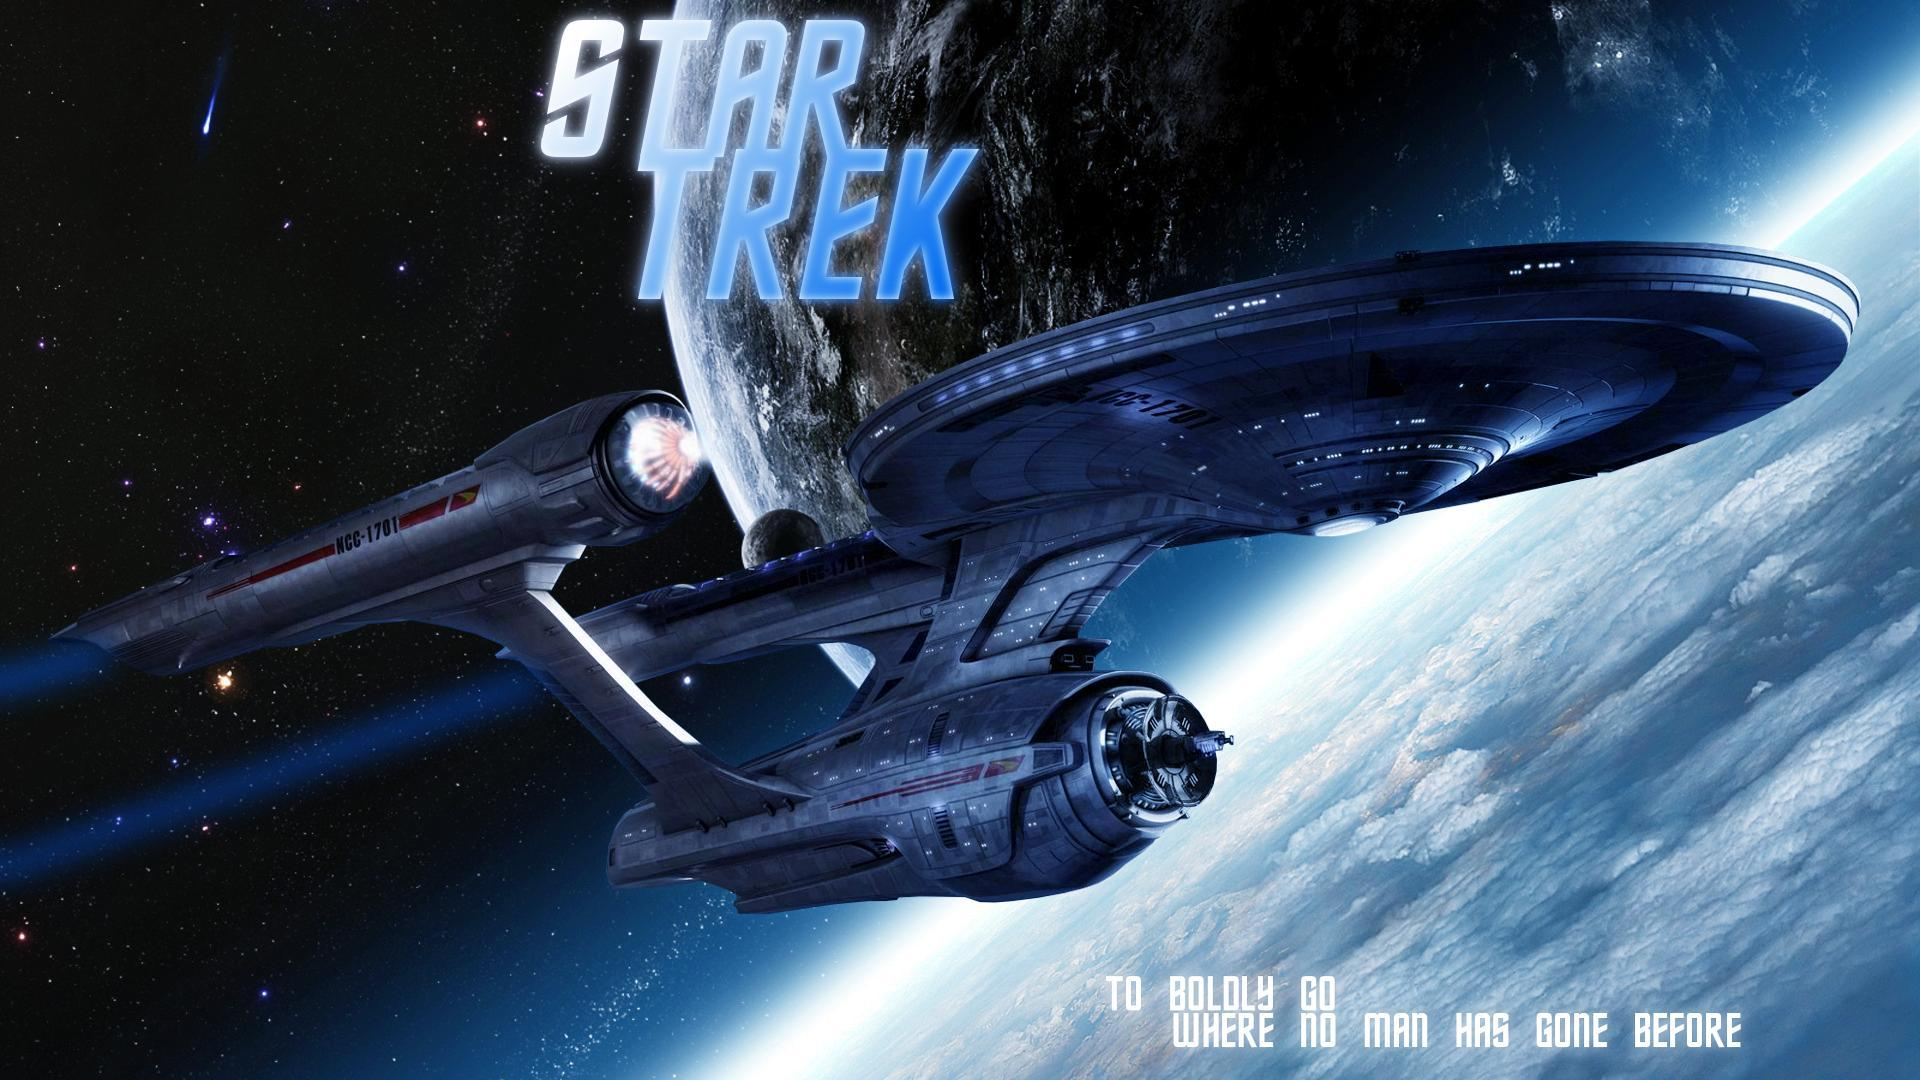 android star trek wallpaper 1920x1080 - photo #40